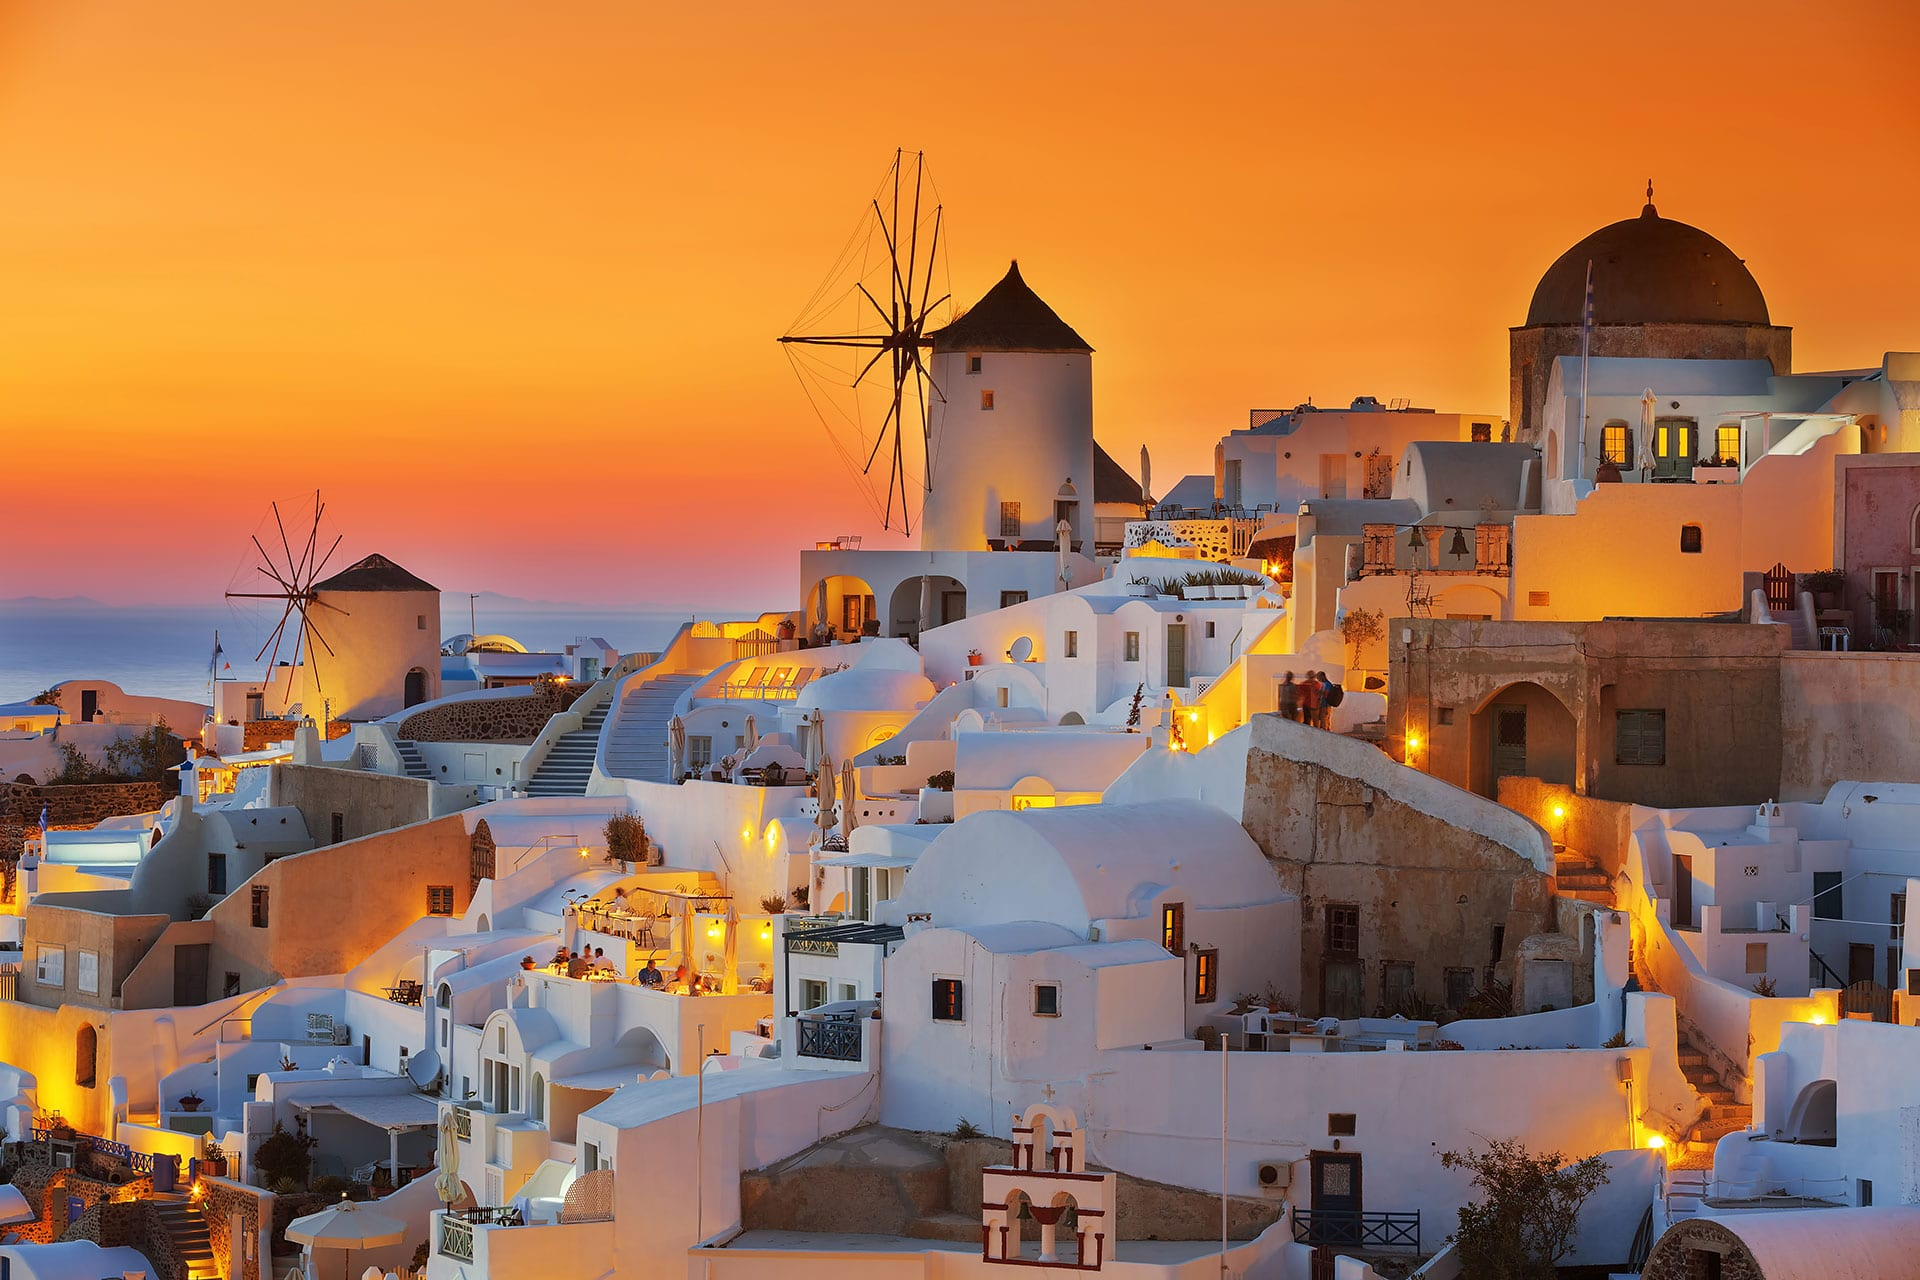 Santorini at sunset seeing windmills